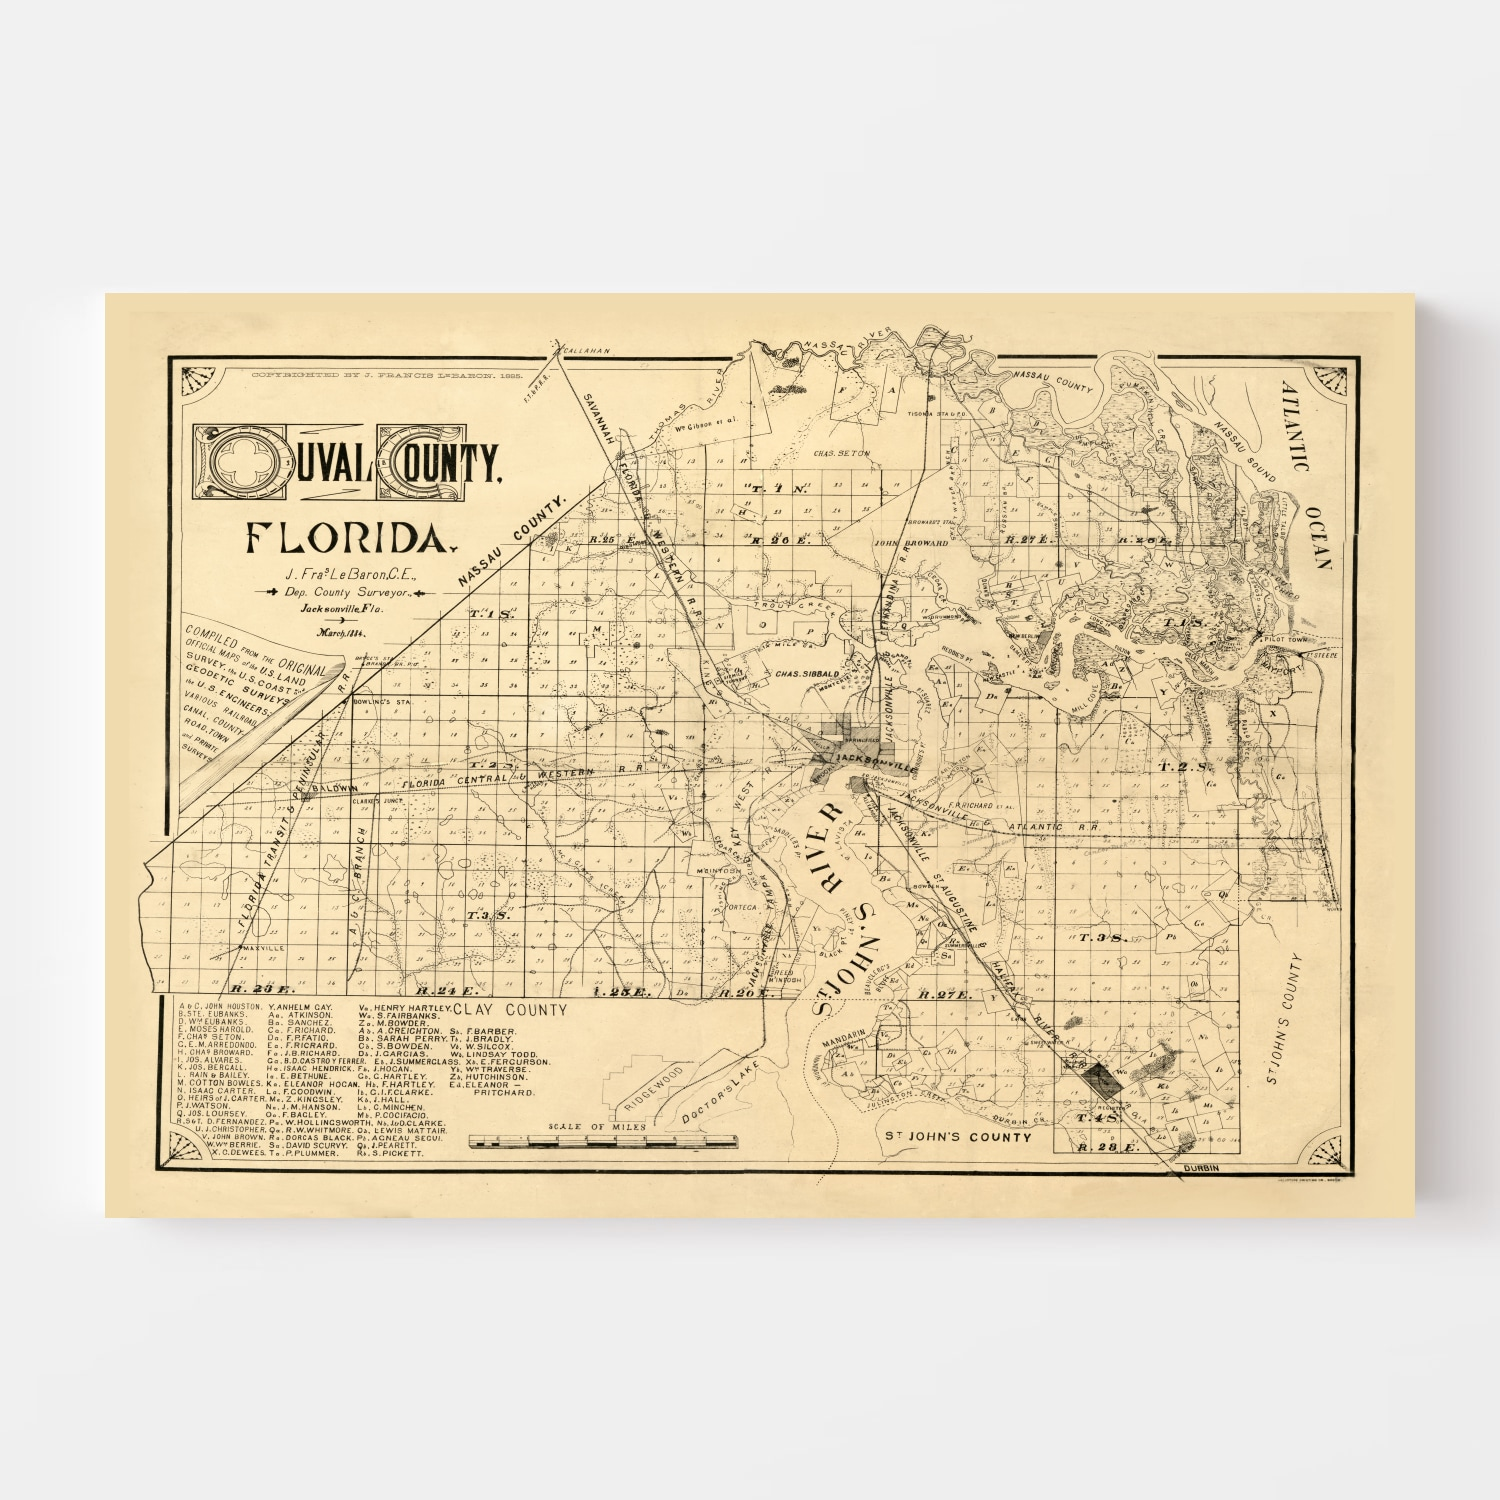 Vintage Map of Duval County, Florida 1885